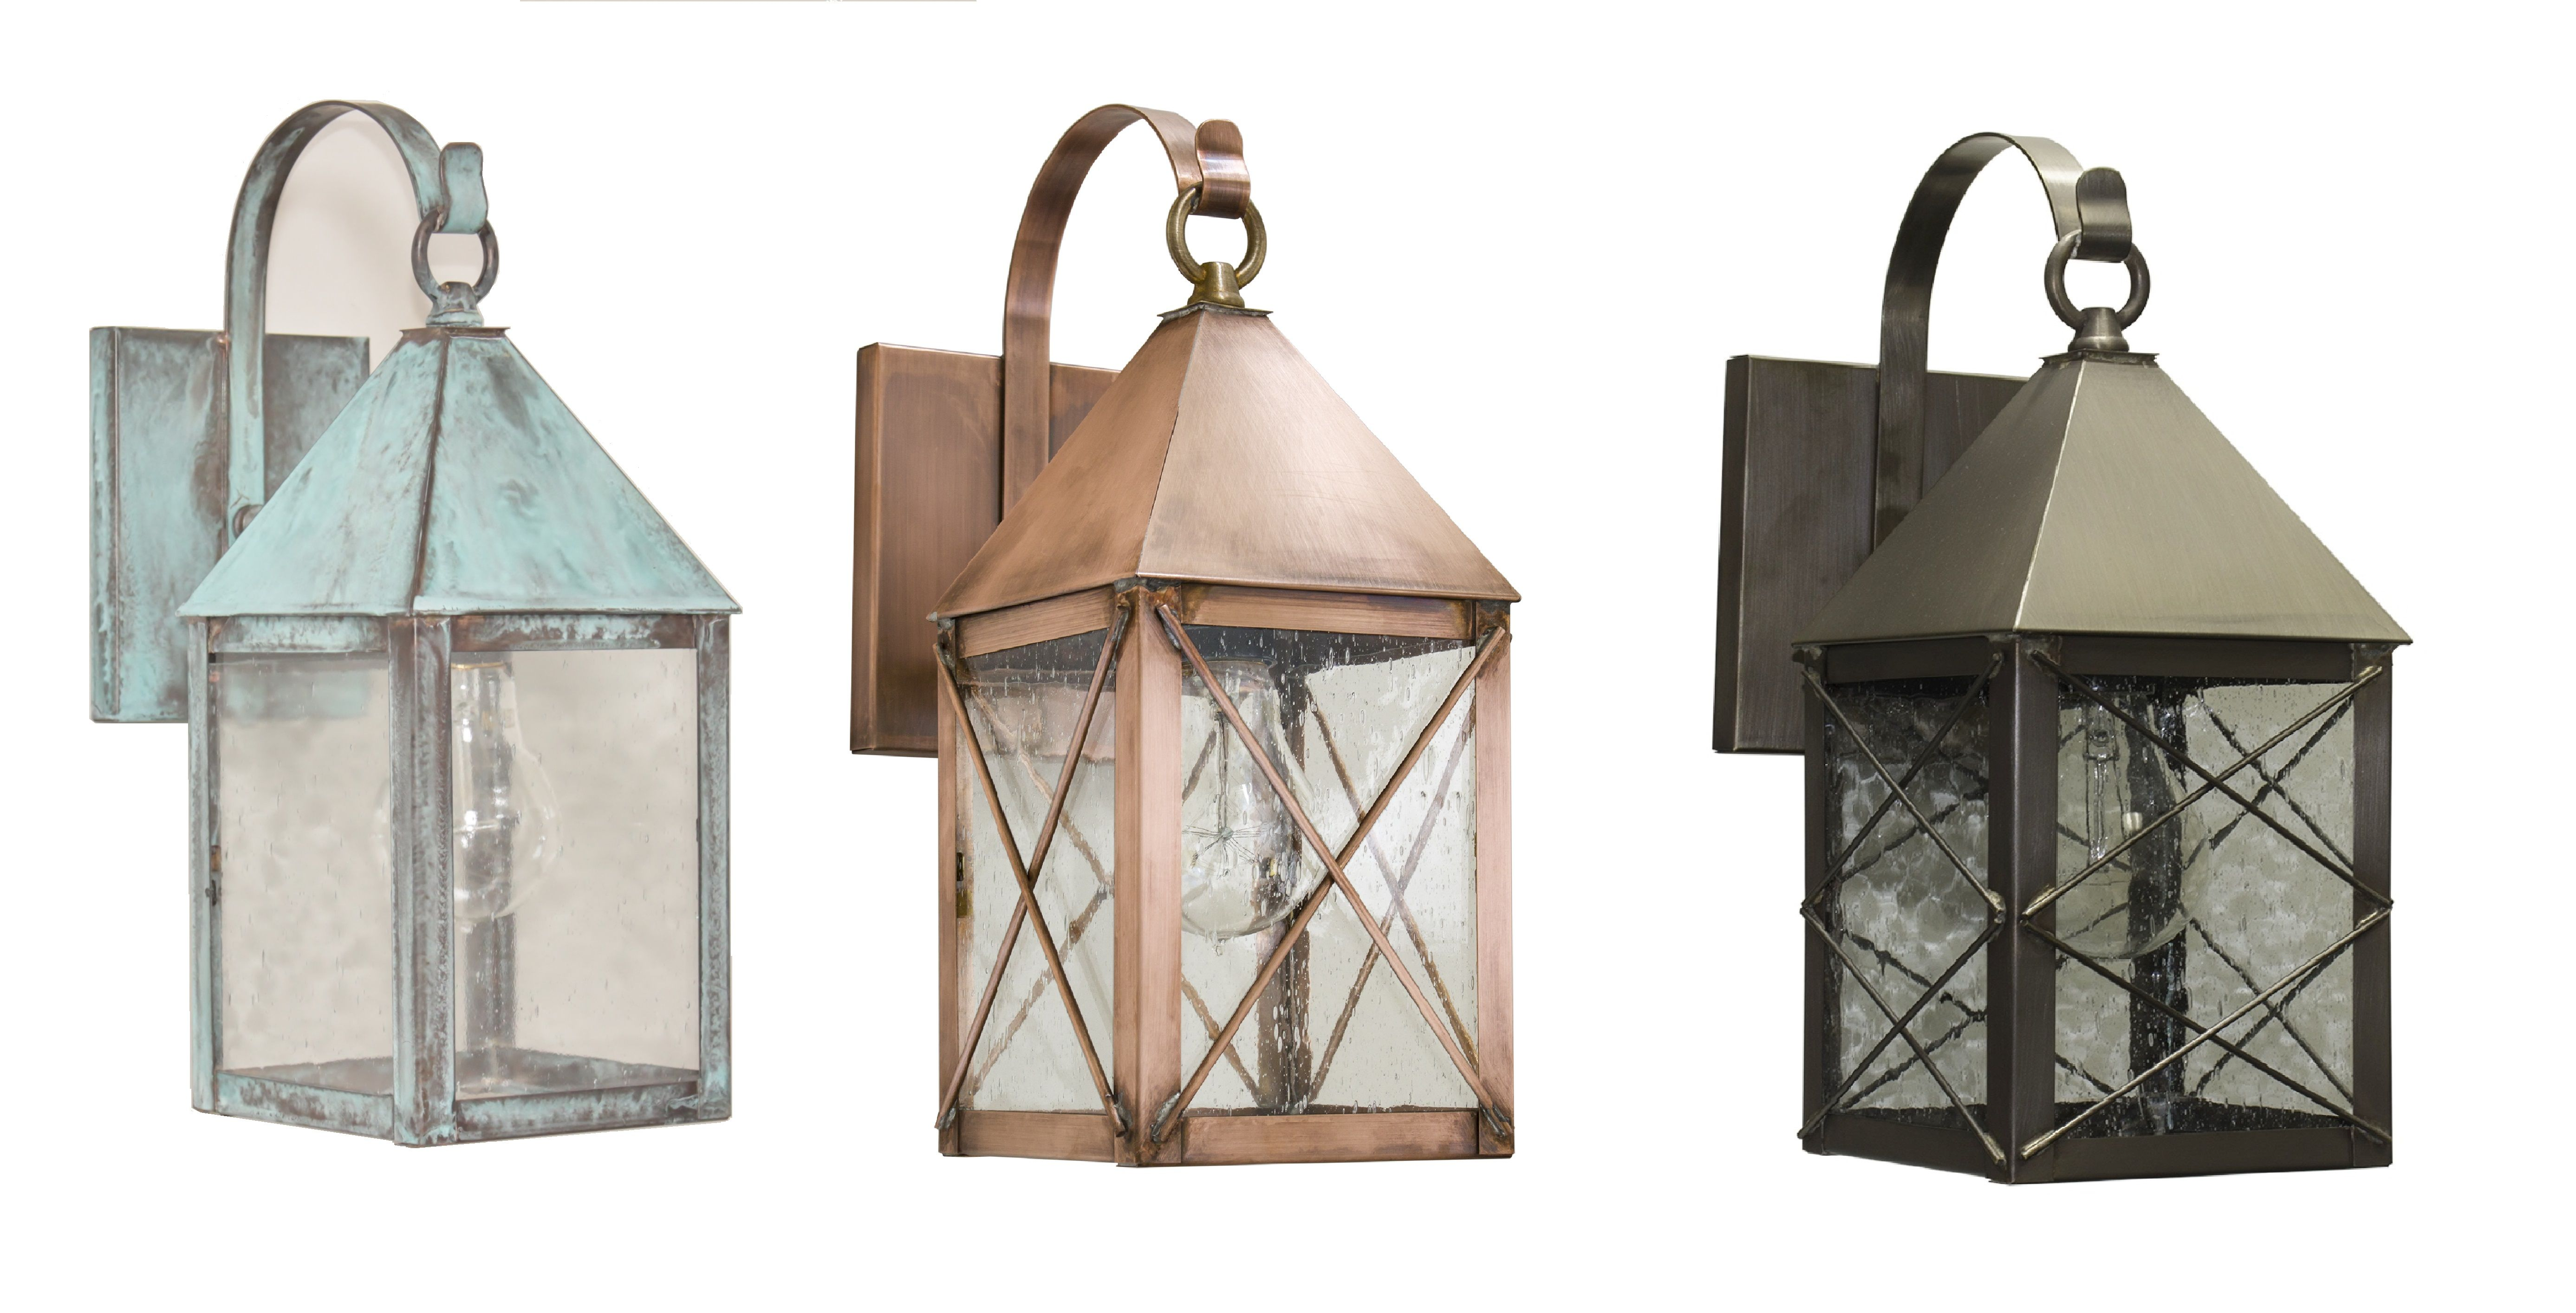 Brass Traditions 531 P Shown In Verde Green Antique Copper And Dark Antique Brass Finishes Brasstraditions Outdoor Wall Lantern Outdoor Wall Sconce Sconces